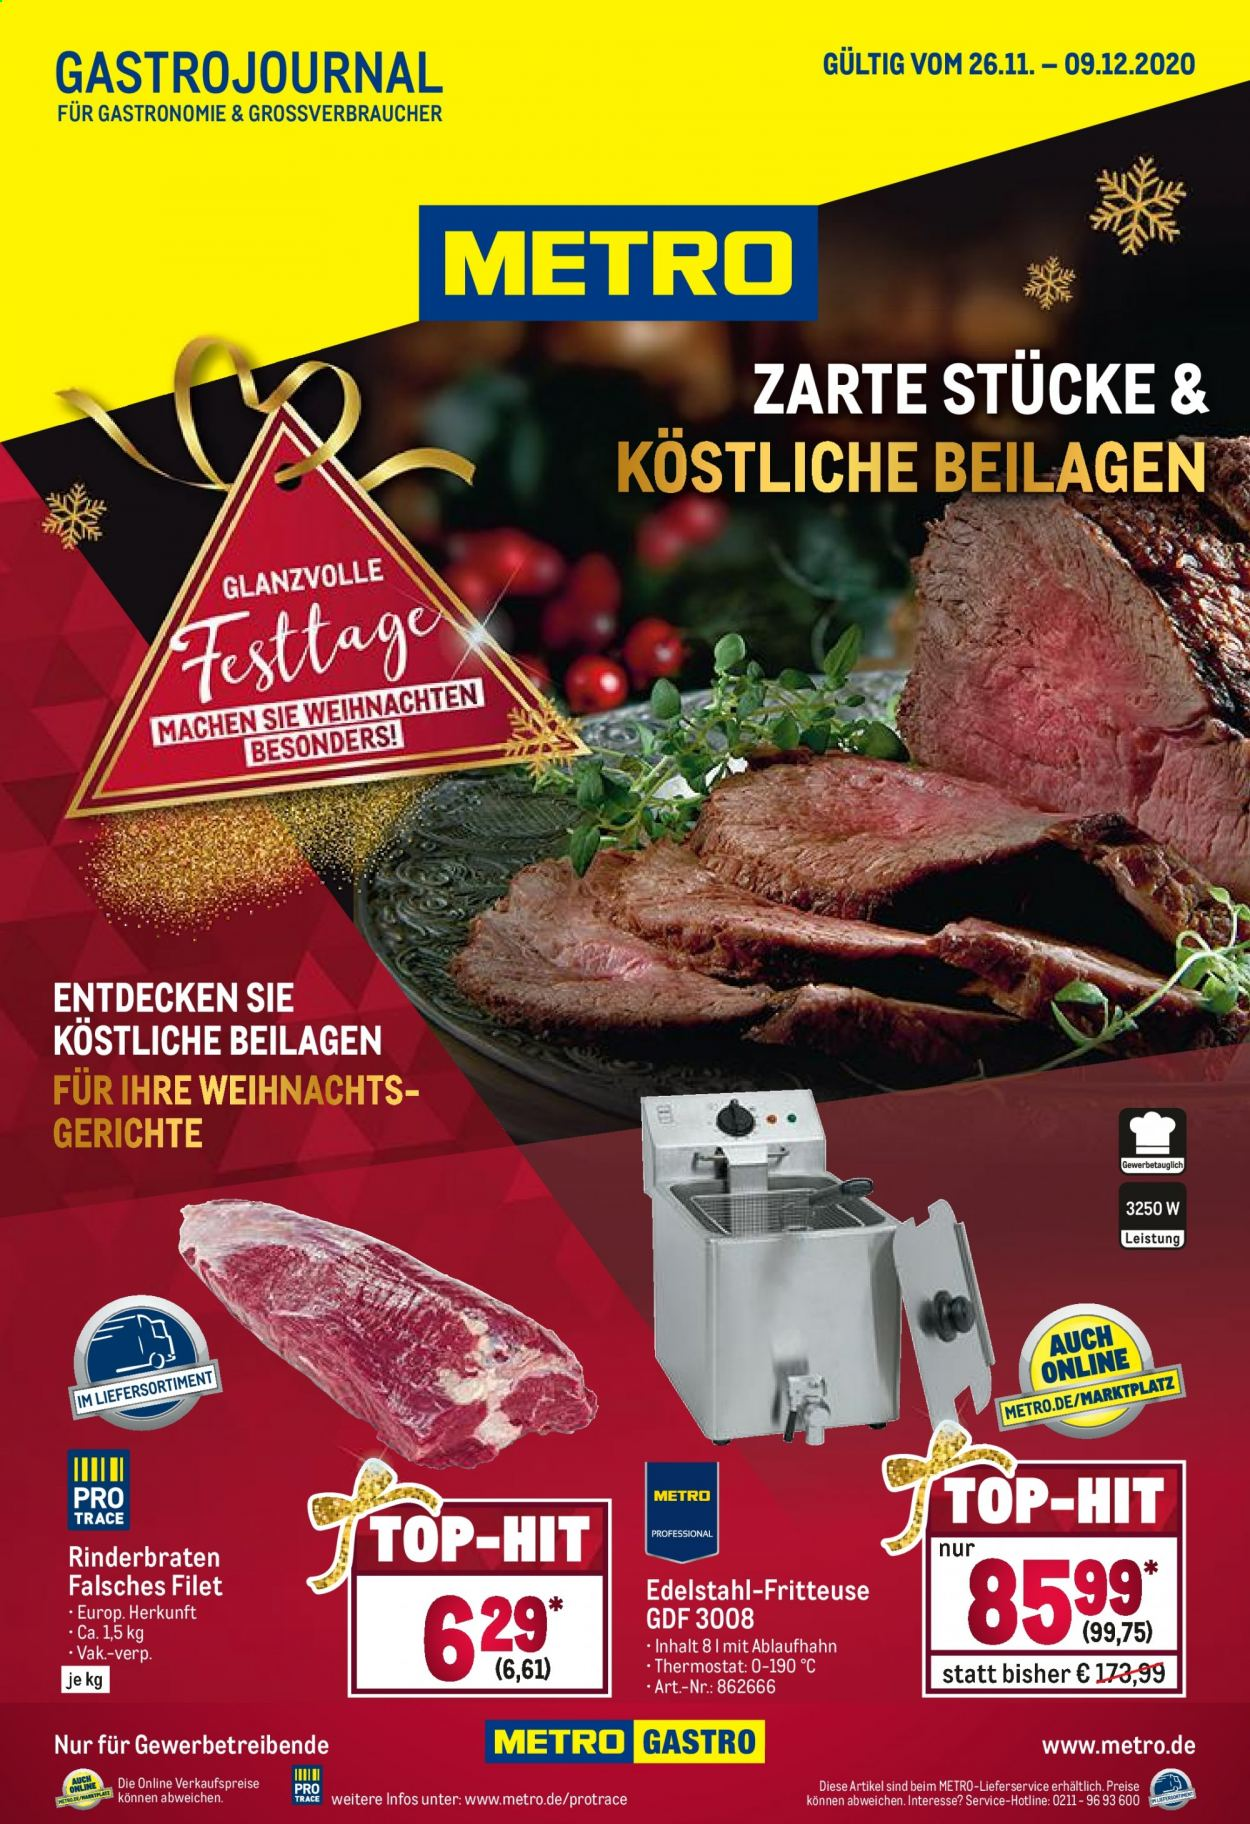 Prospekte Metro - 26.11.2020 - 9.12.2020 - Produkte in Aktion - rinderbraten, fritteuse, falsches filet, edelstahl-fritteuse, metro. Seite 1.